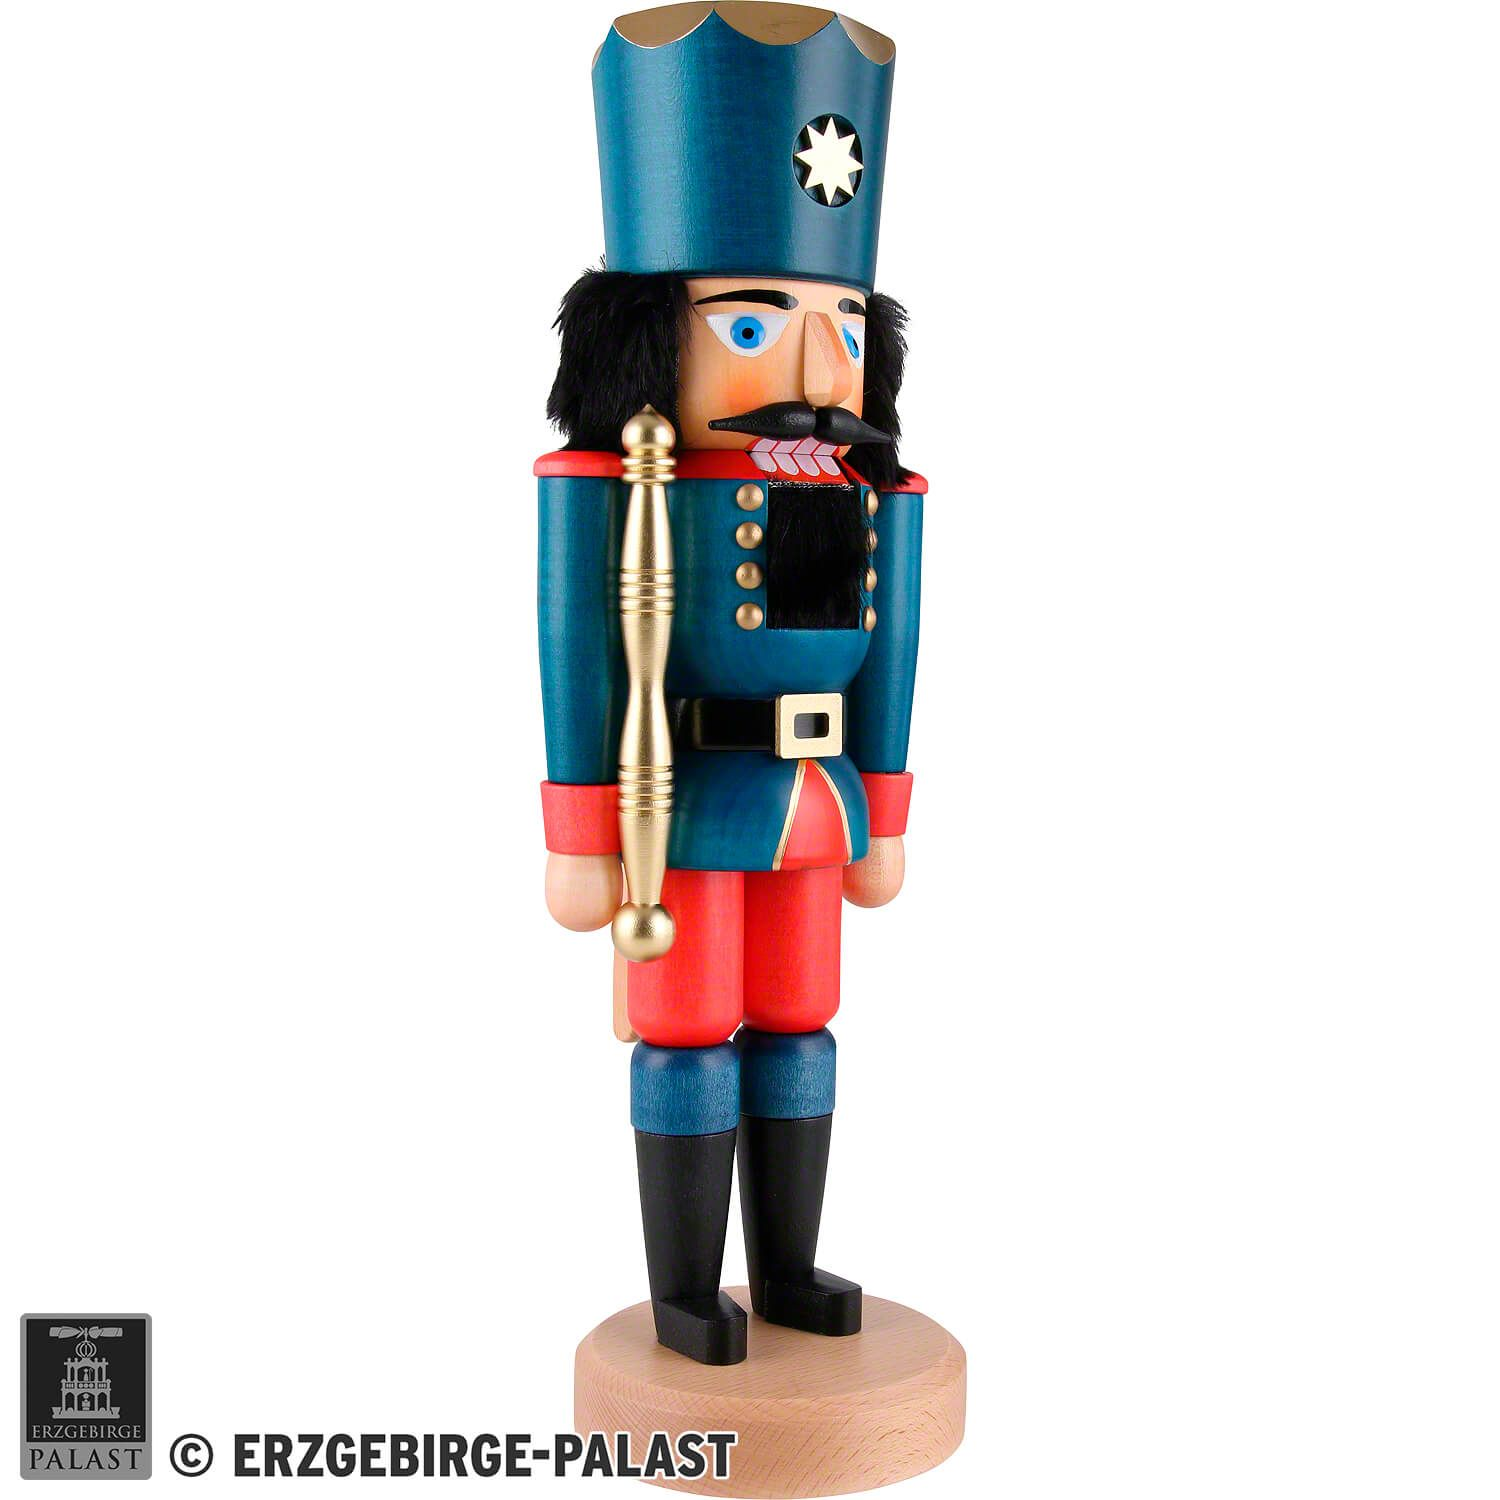 Beautiful, traditional Nutcracker by Christian Ulbricht. The Ulbricht workshops are famous for their premium nutcrackers and have fans around the globe. Their high quality and love for the detail make for a nutcracker that will bring you joy for many years to come.